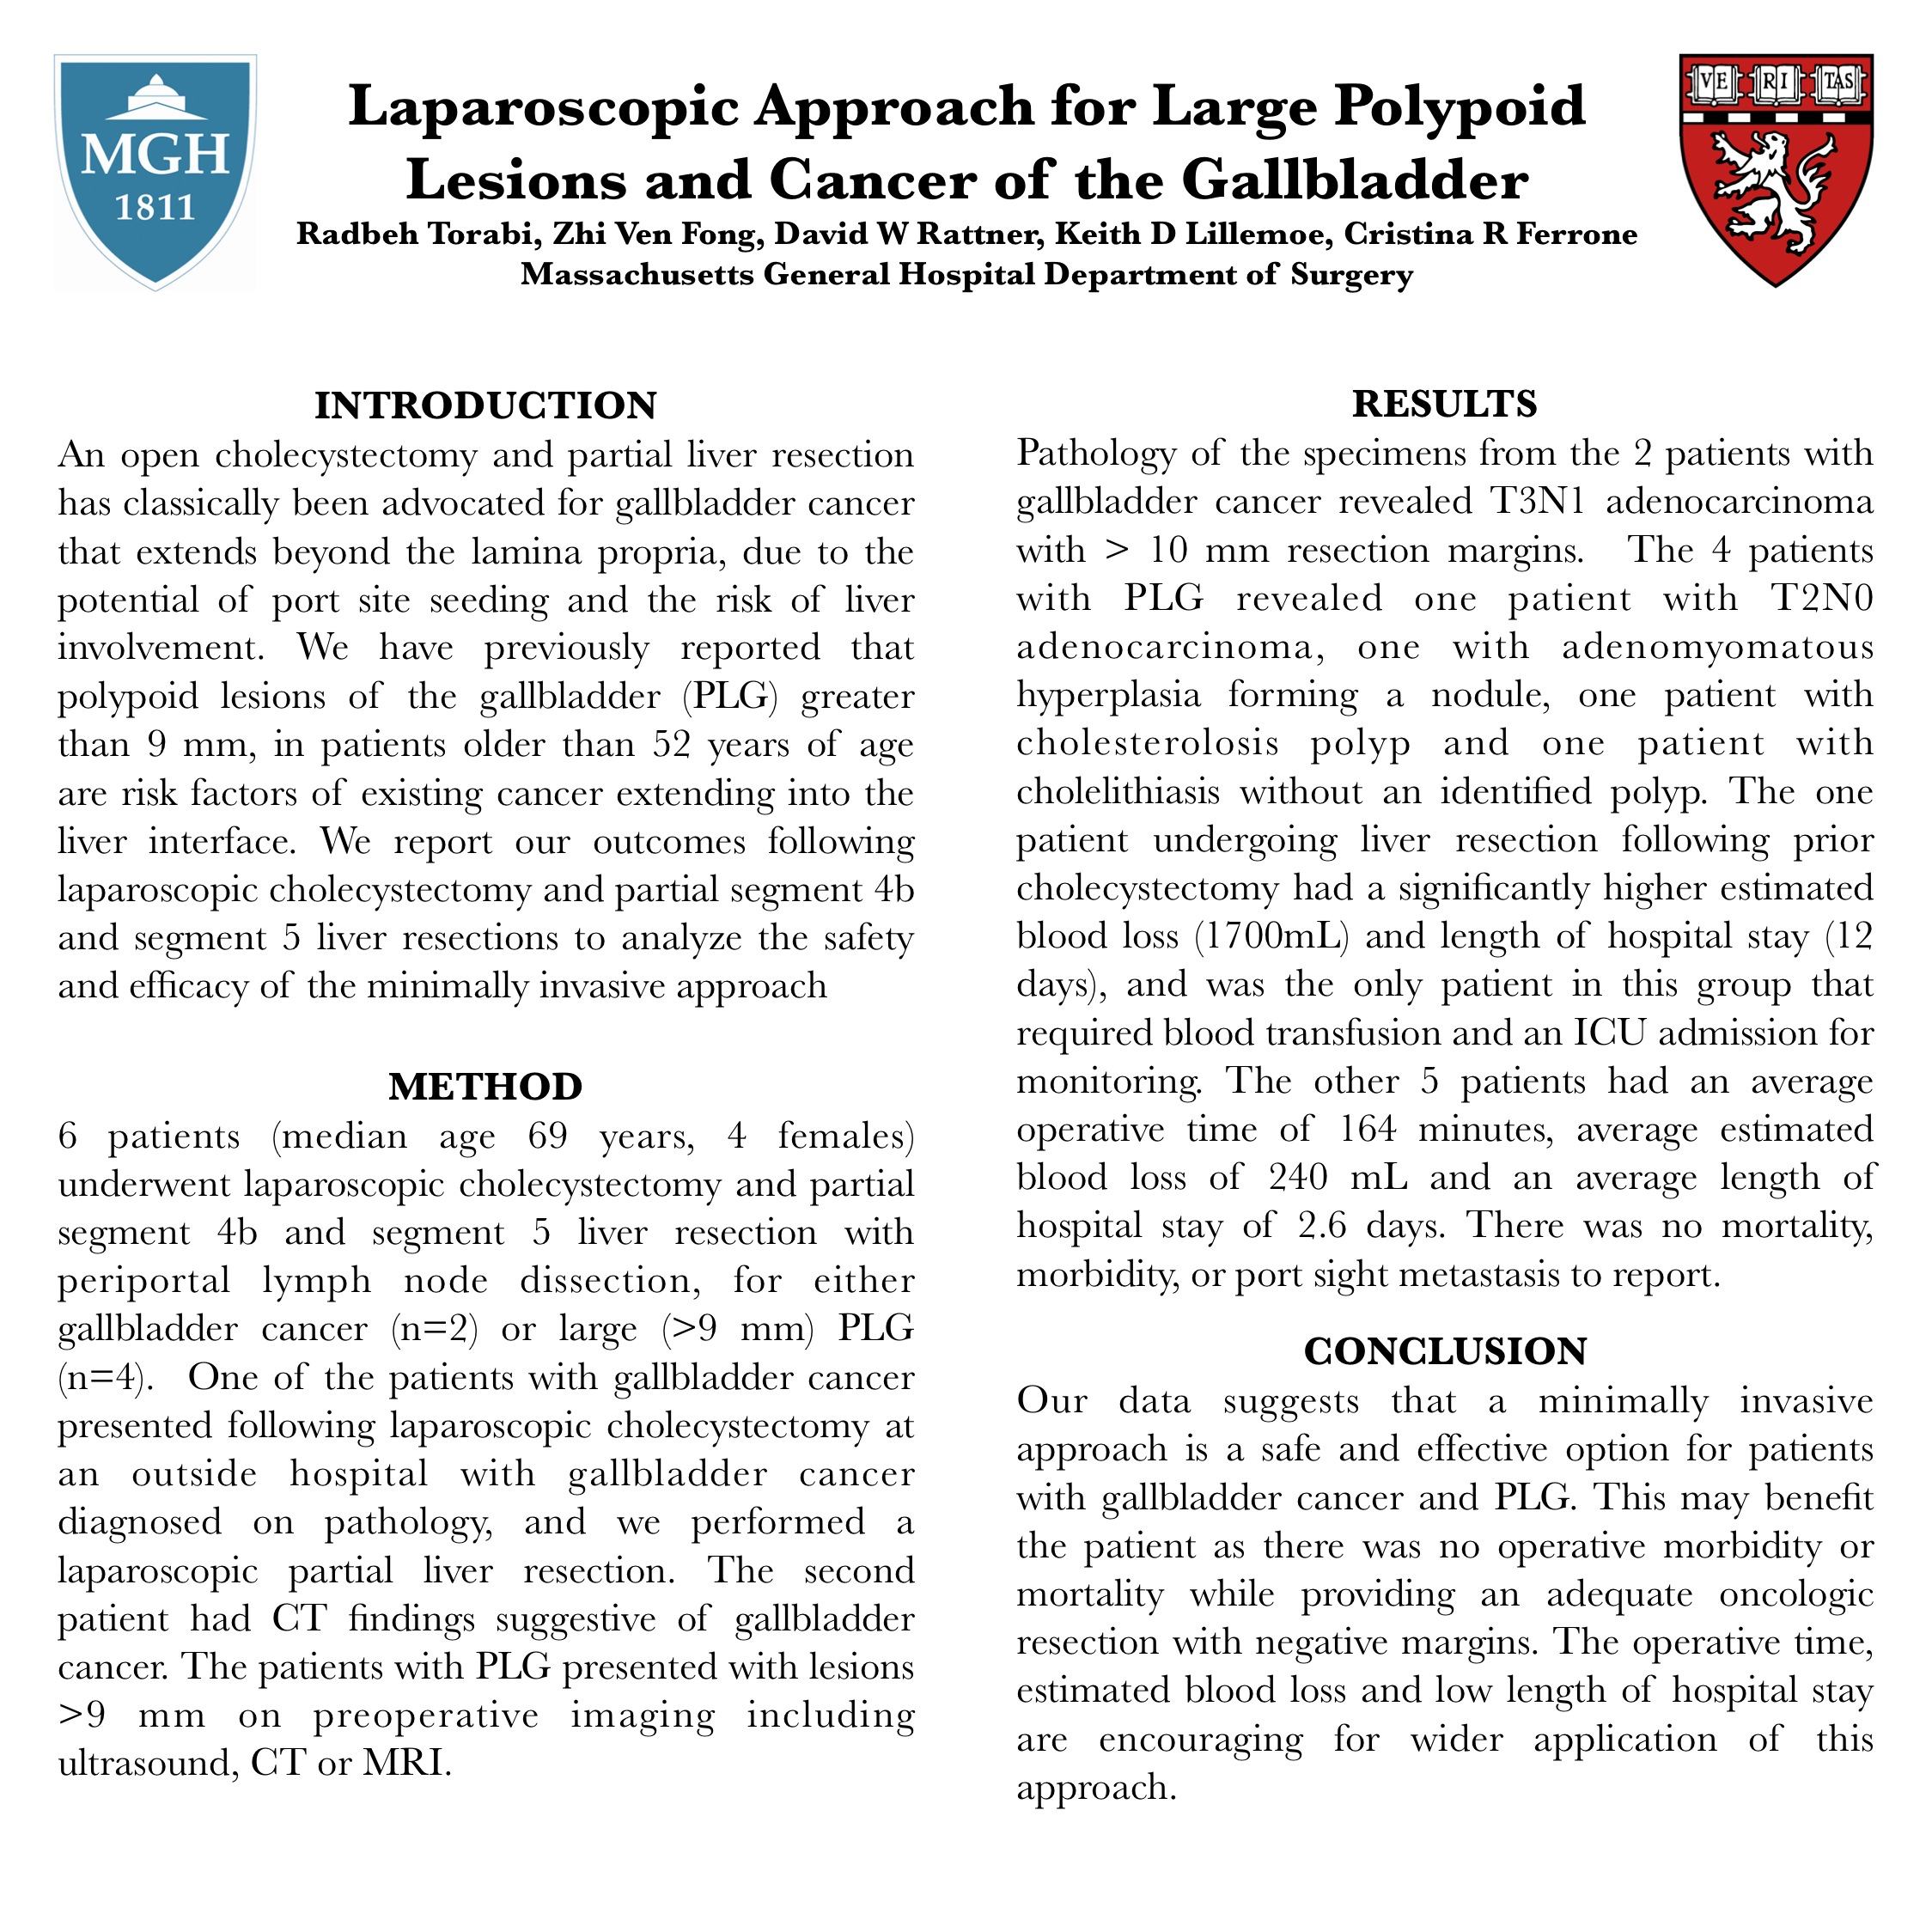 Laparoscopic Approach for Large Polypoid Lesions and Cancer of the